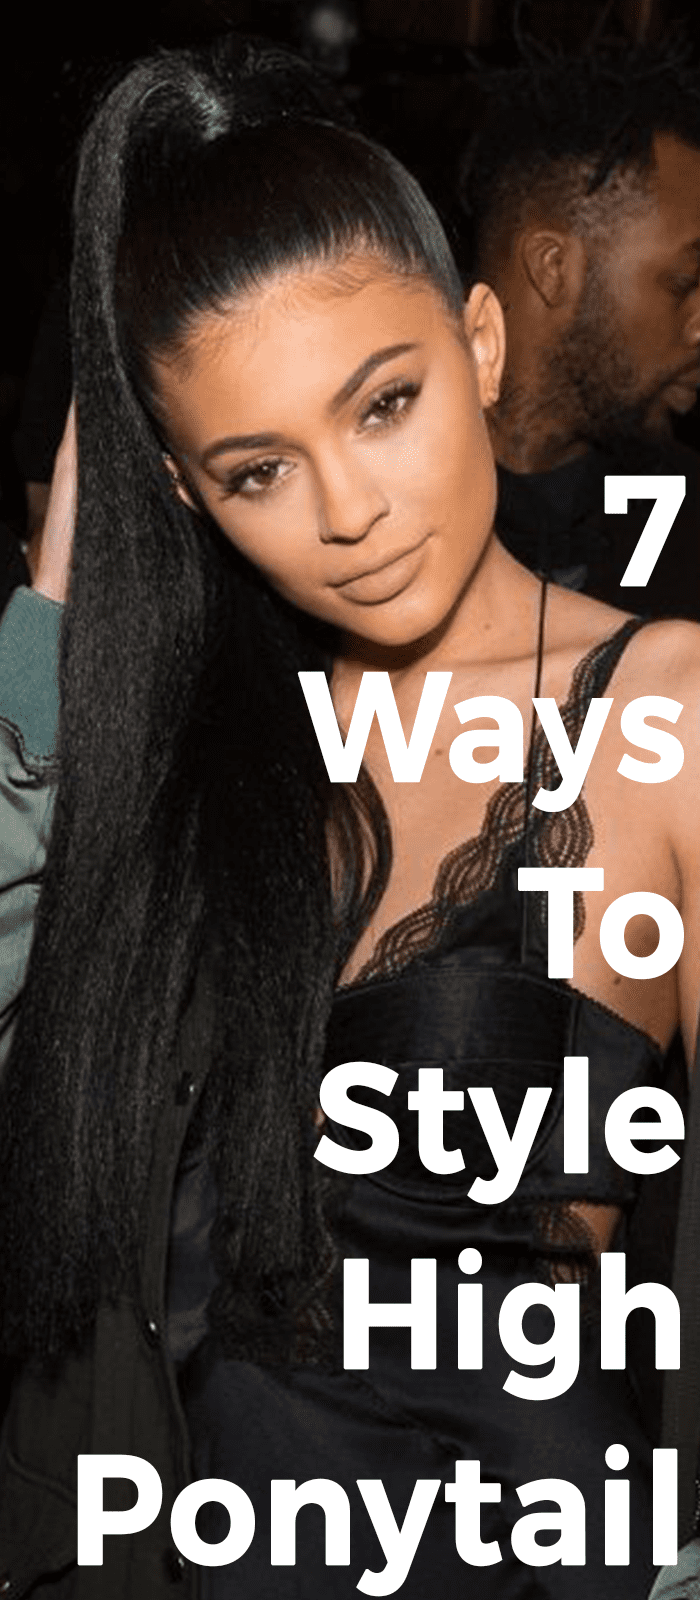 7 Ways To Style High Ponytail